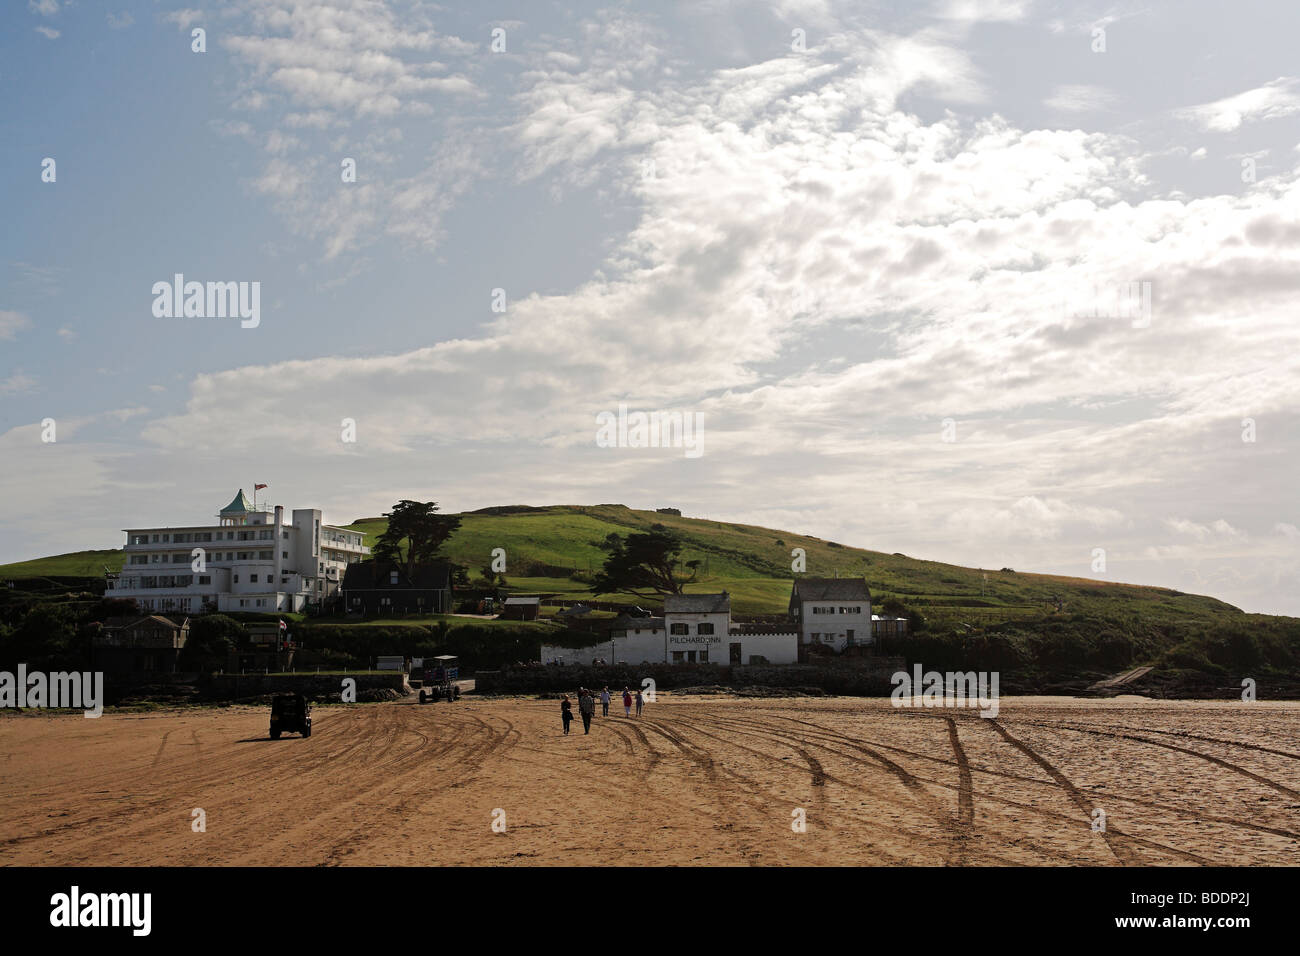 2580. Burgh Island, Bigbury-on-Sea, Devon - Stock Image